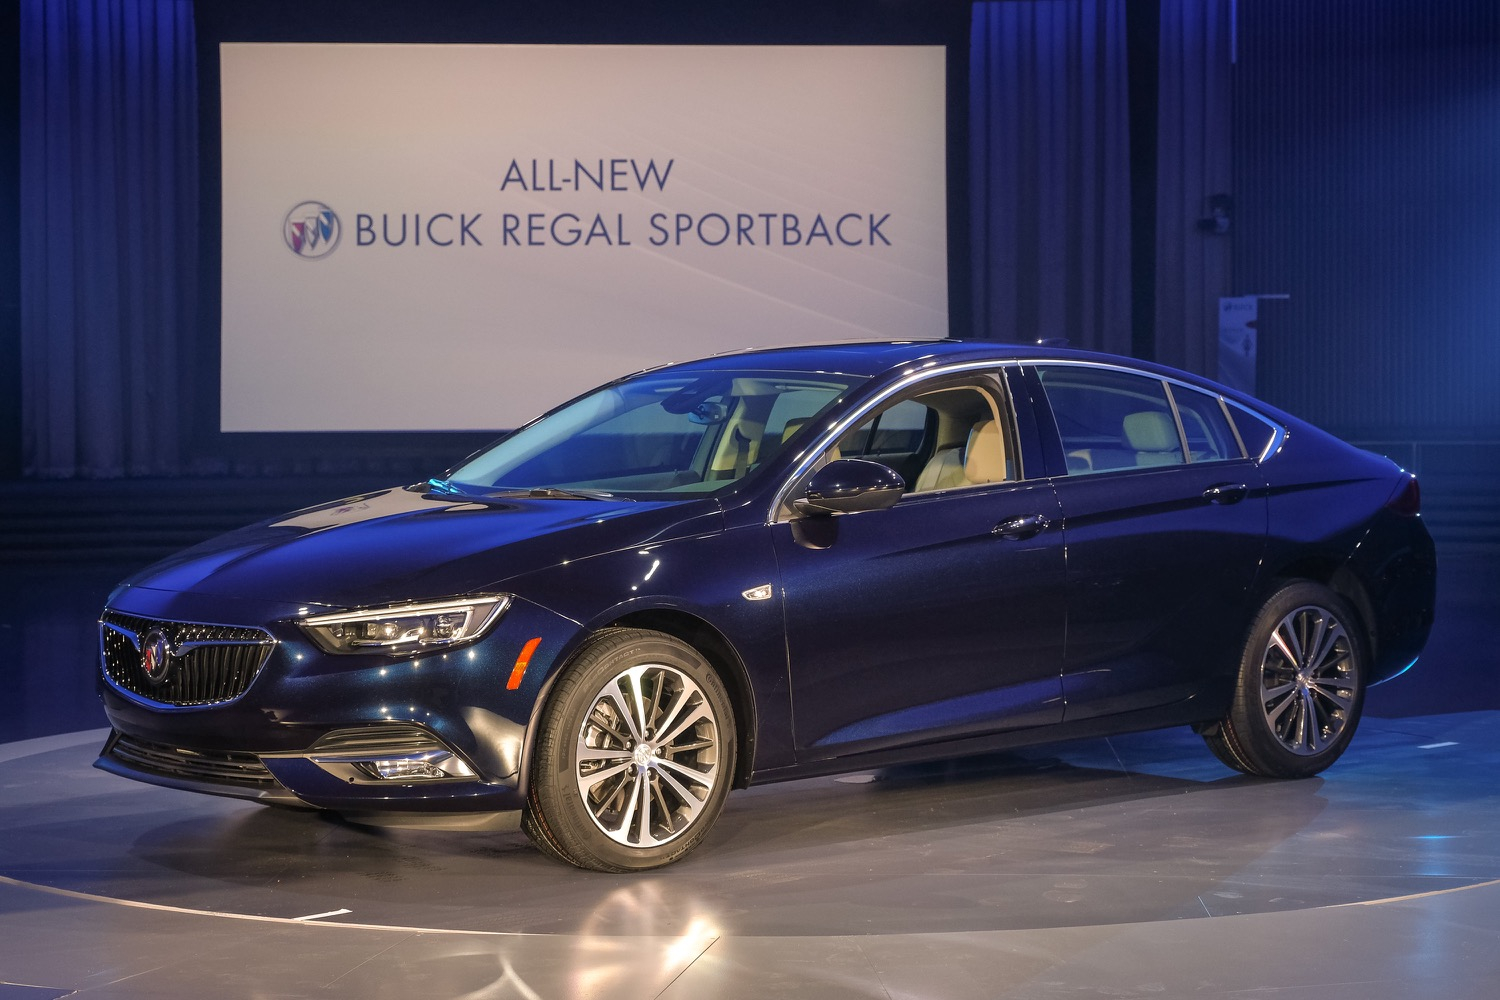 2019 Buick Regal Info, Specs, Wiki | Gm Authority New 2021 Buick Regal Sportback Configurations, Ground Clearance, Release Date